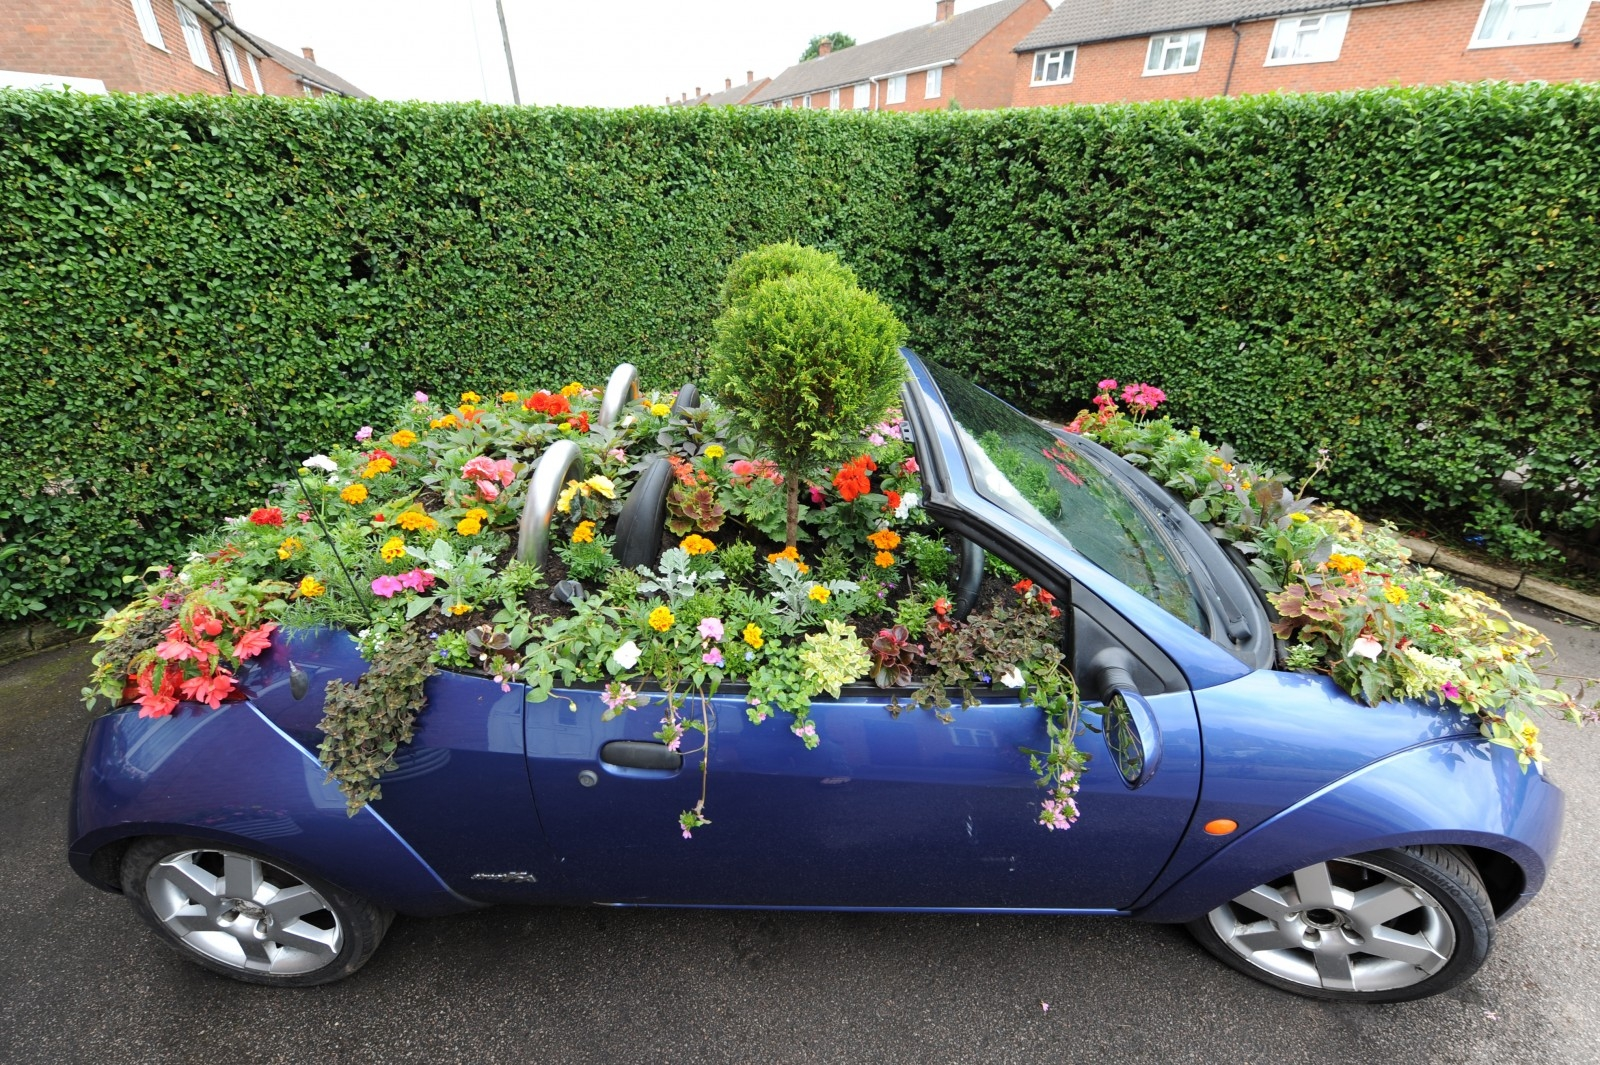 Flower Power – a family have put some diesel into winning this year's Britain in Bloom competition